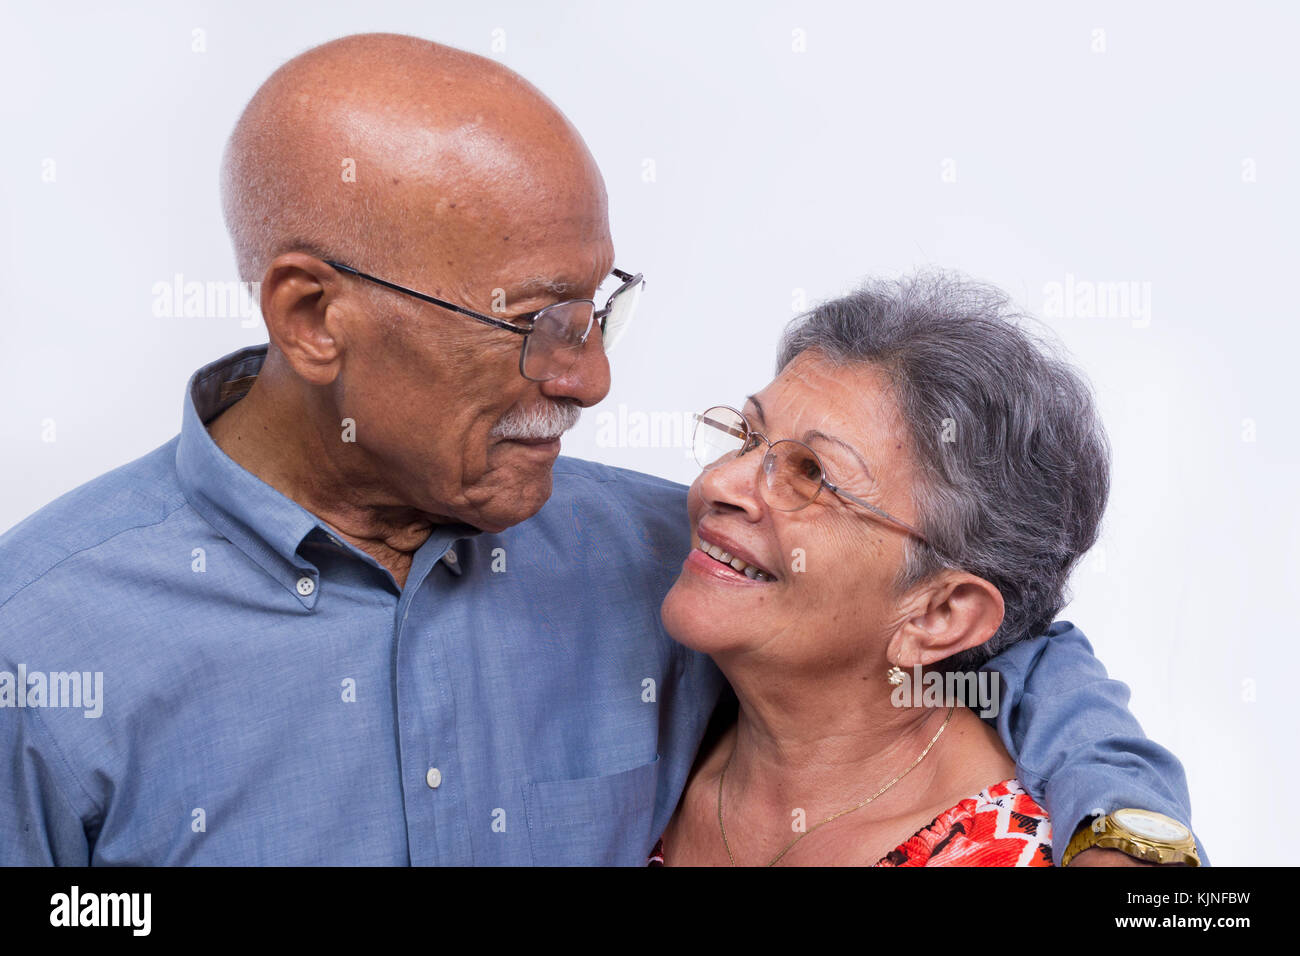 An smiling elderly couple, both wearing glasses. - Stock Image